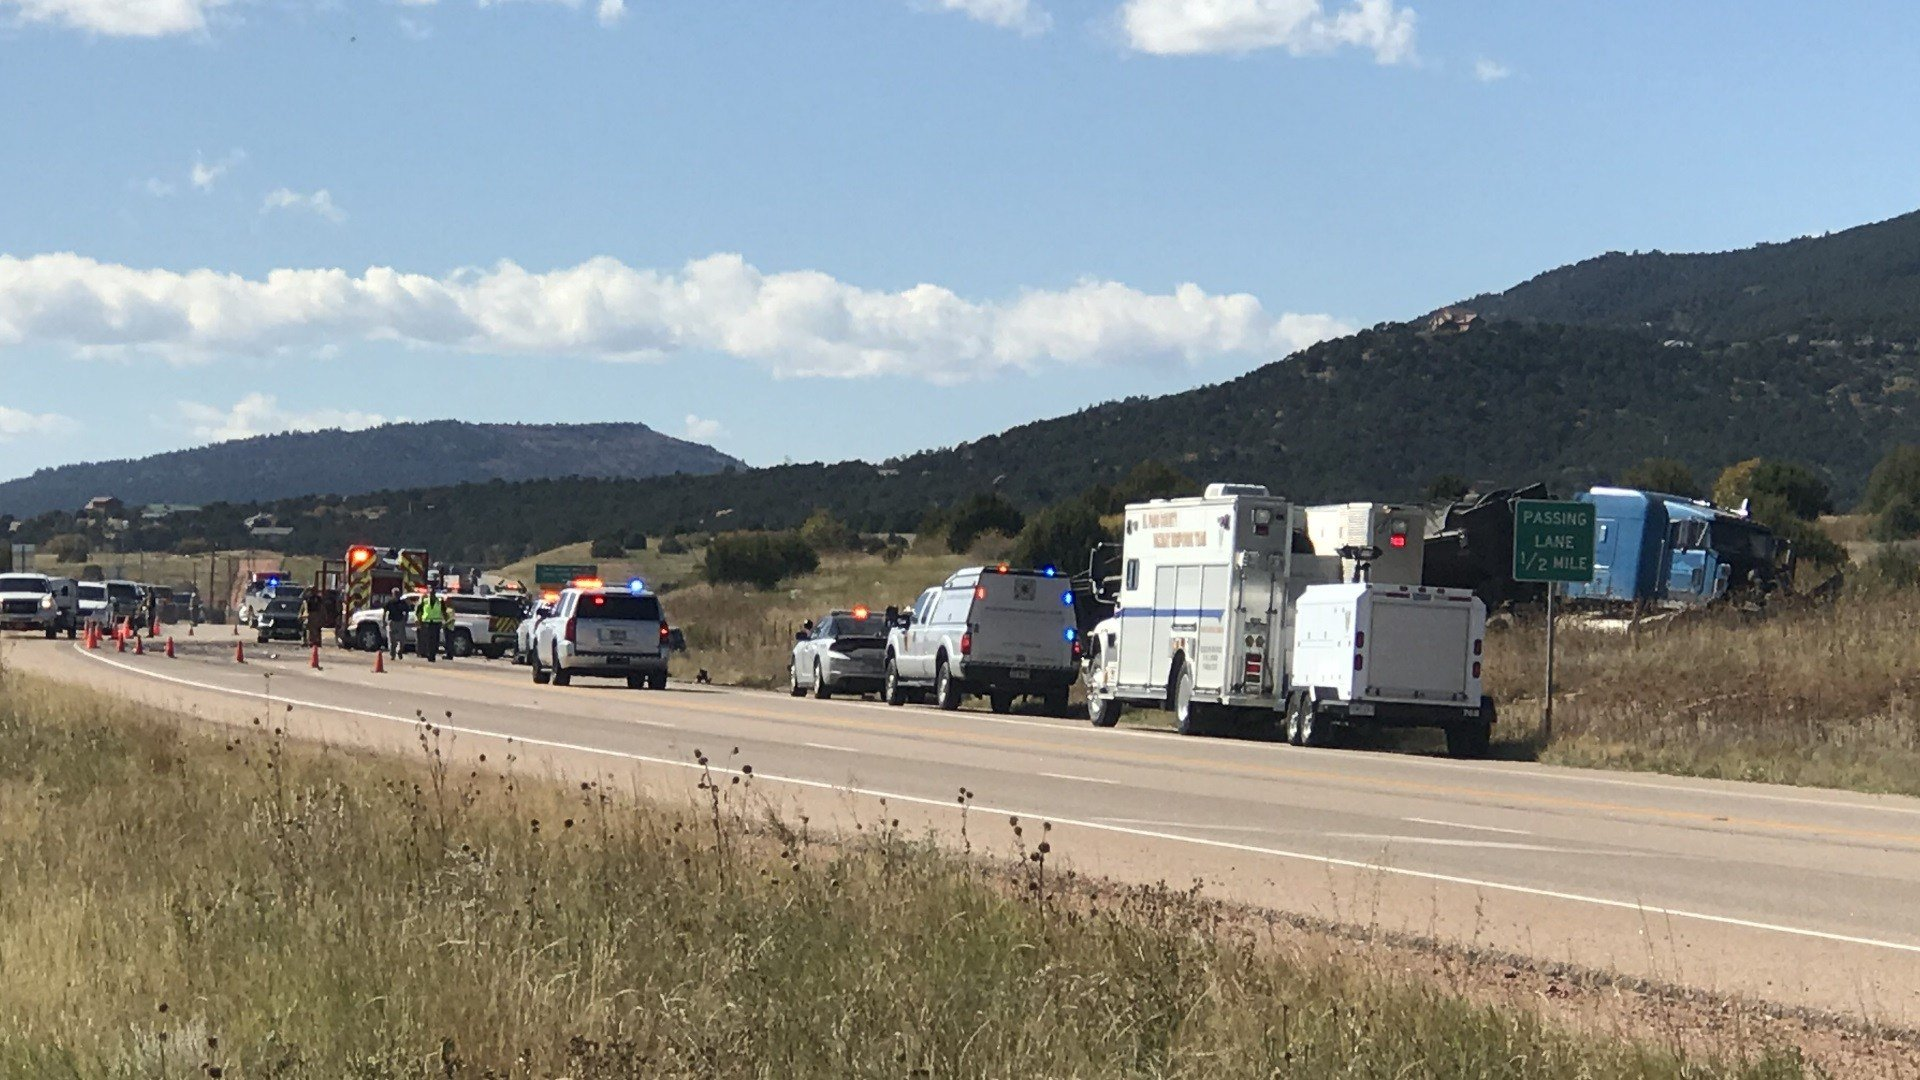 Colorado State Patrol investigates fatal crash on Highway 115. (KOAA)